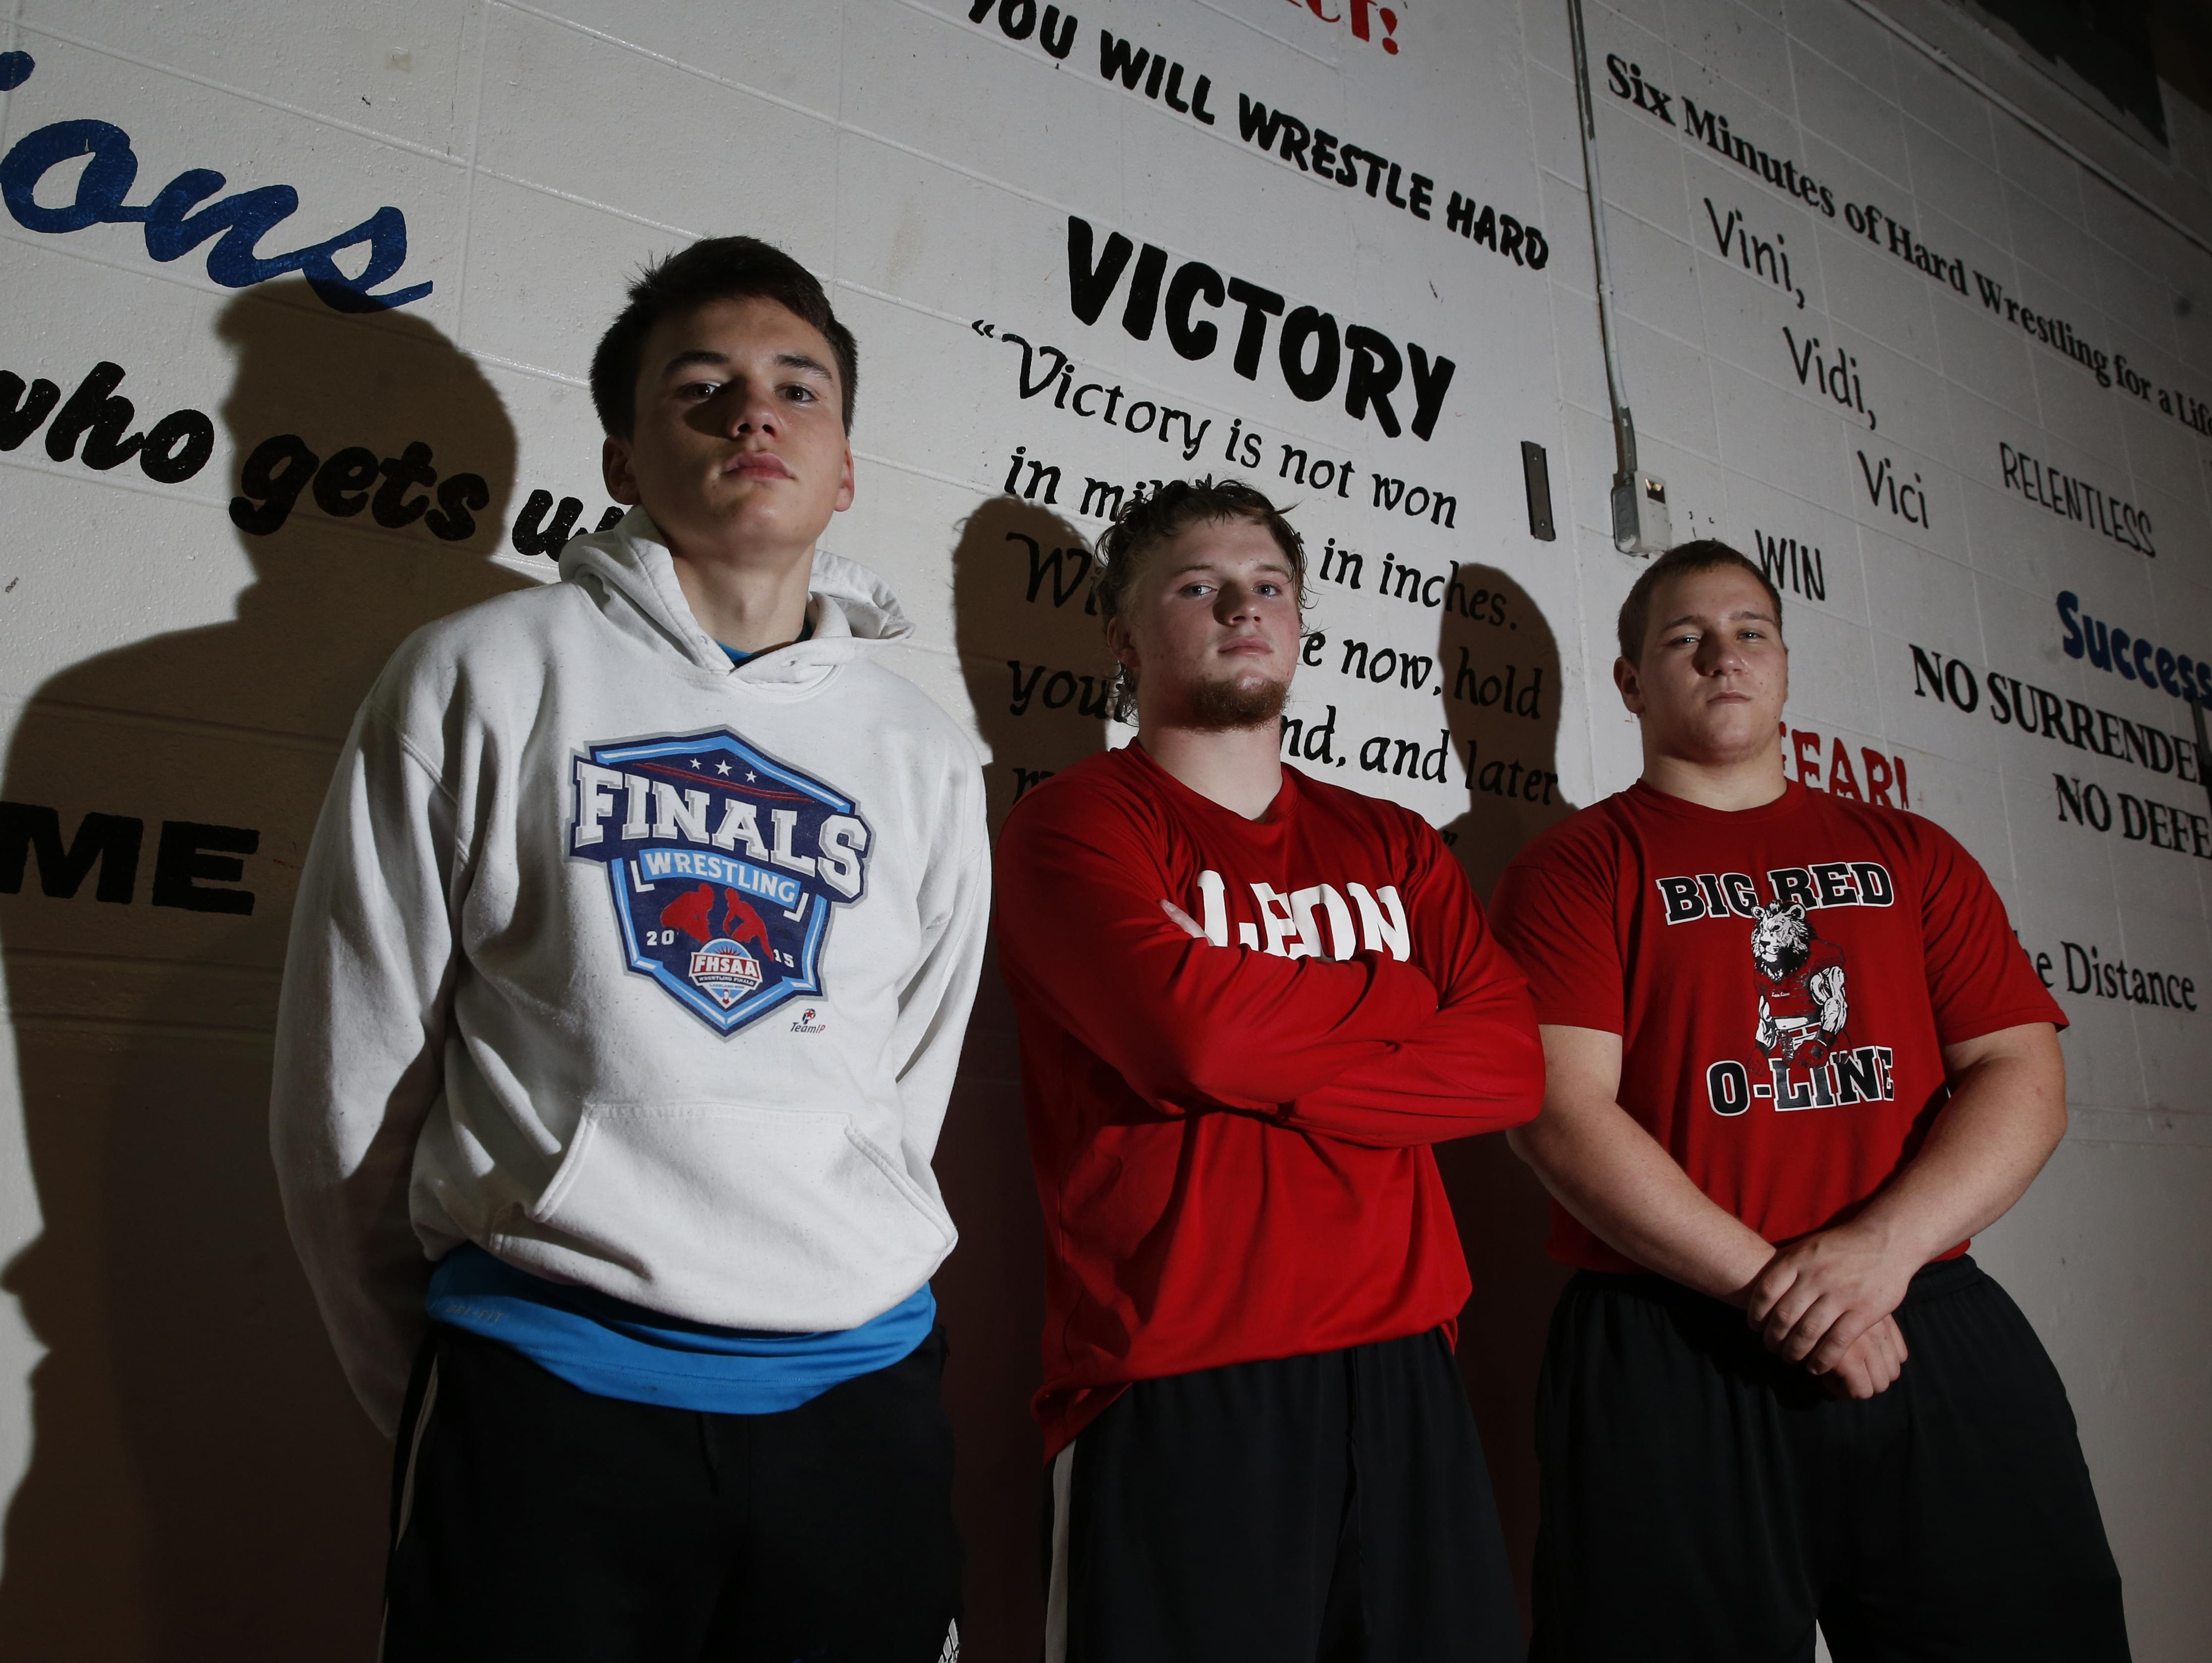 The Leon wrestling team returns three state-qualifying wrestlers off a 12th place state finish: from left, sophomore brothers Justin Grant (155) and J.T. Grant (220), and heavyweight state runner-up Gabe Beyer.